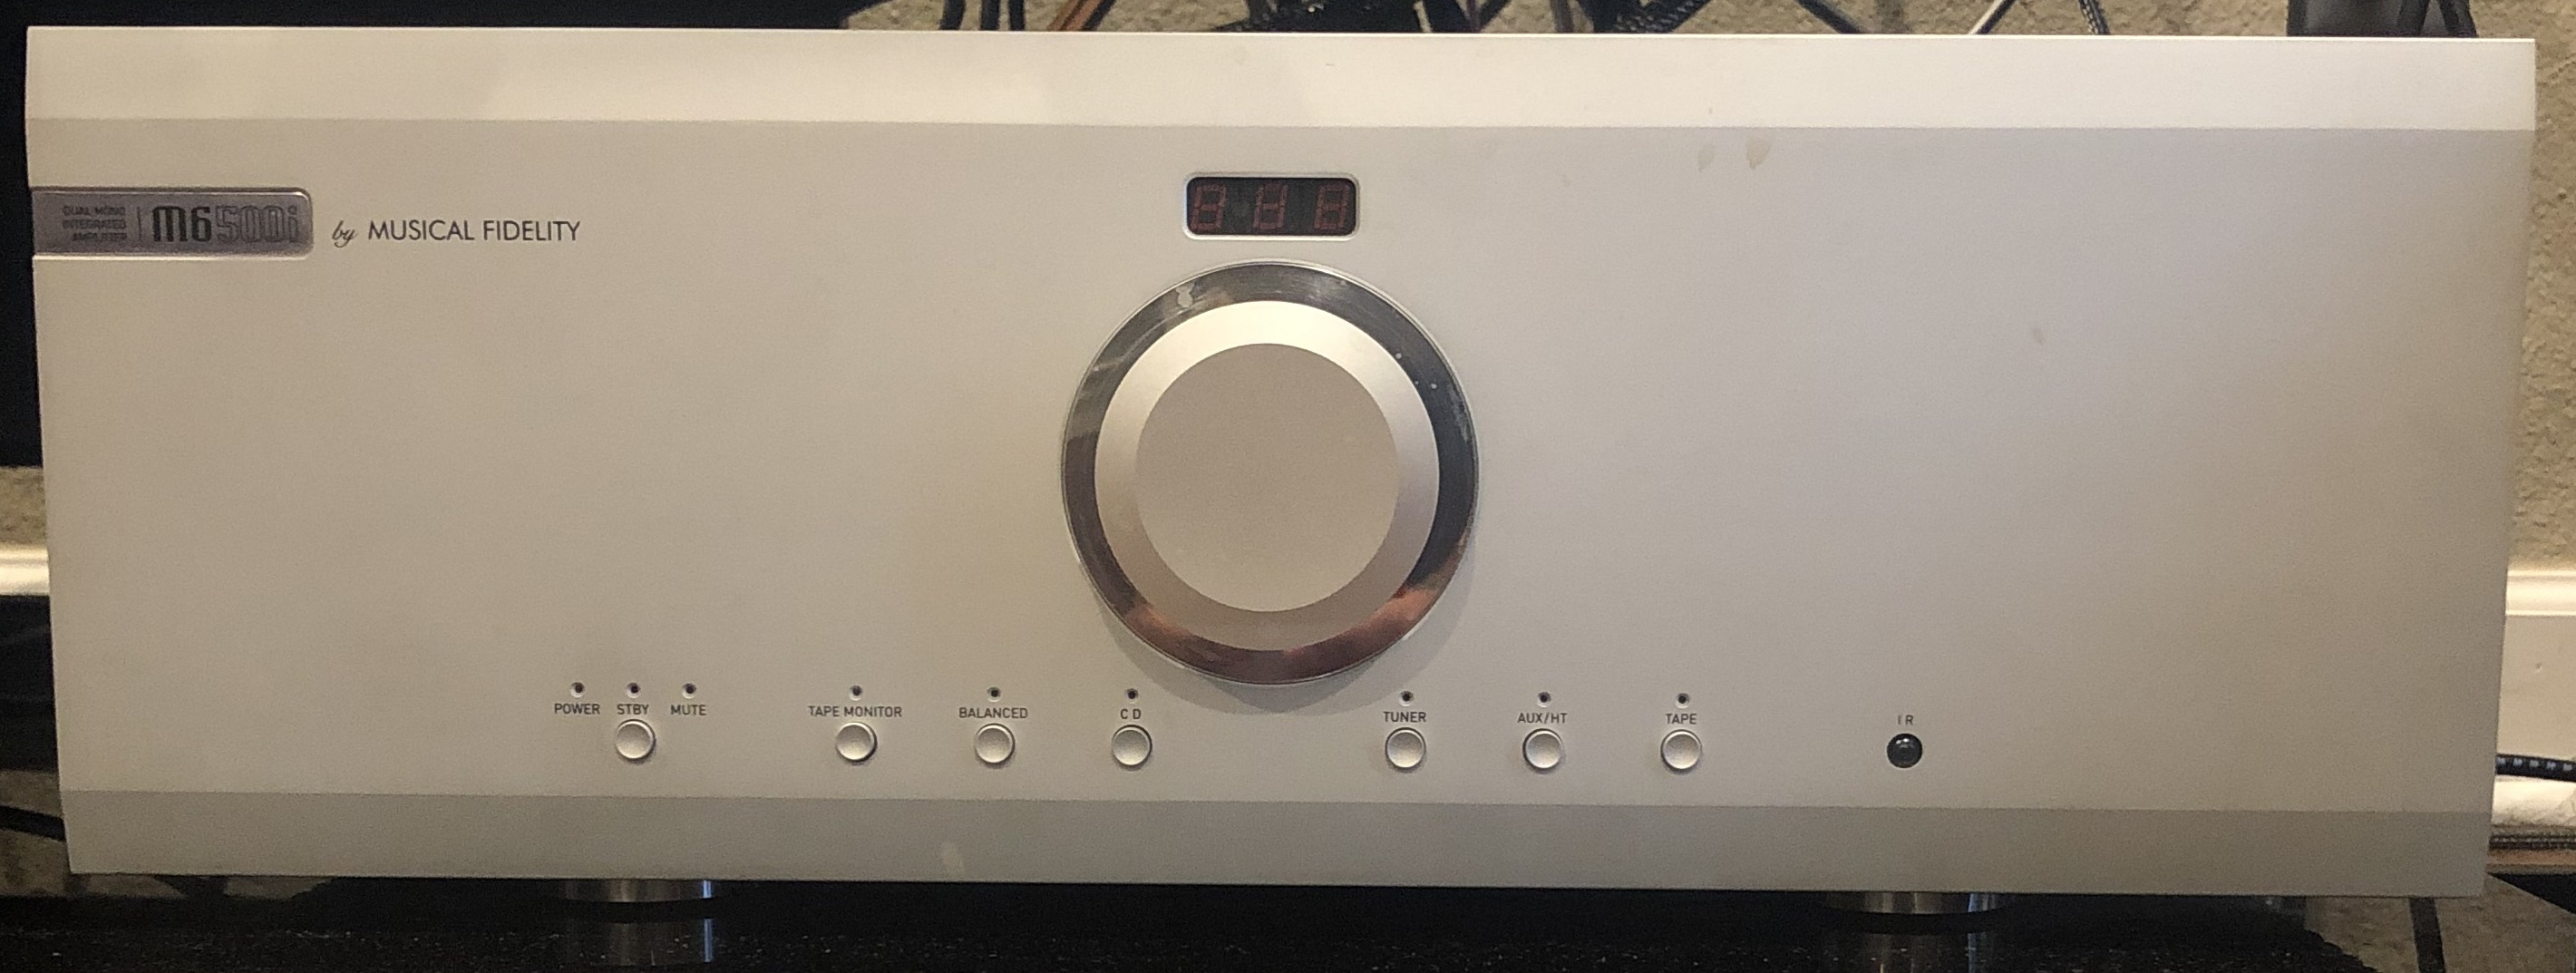 Musical Fidelity M6 500i Integrated Amplifier in Silver